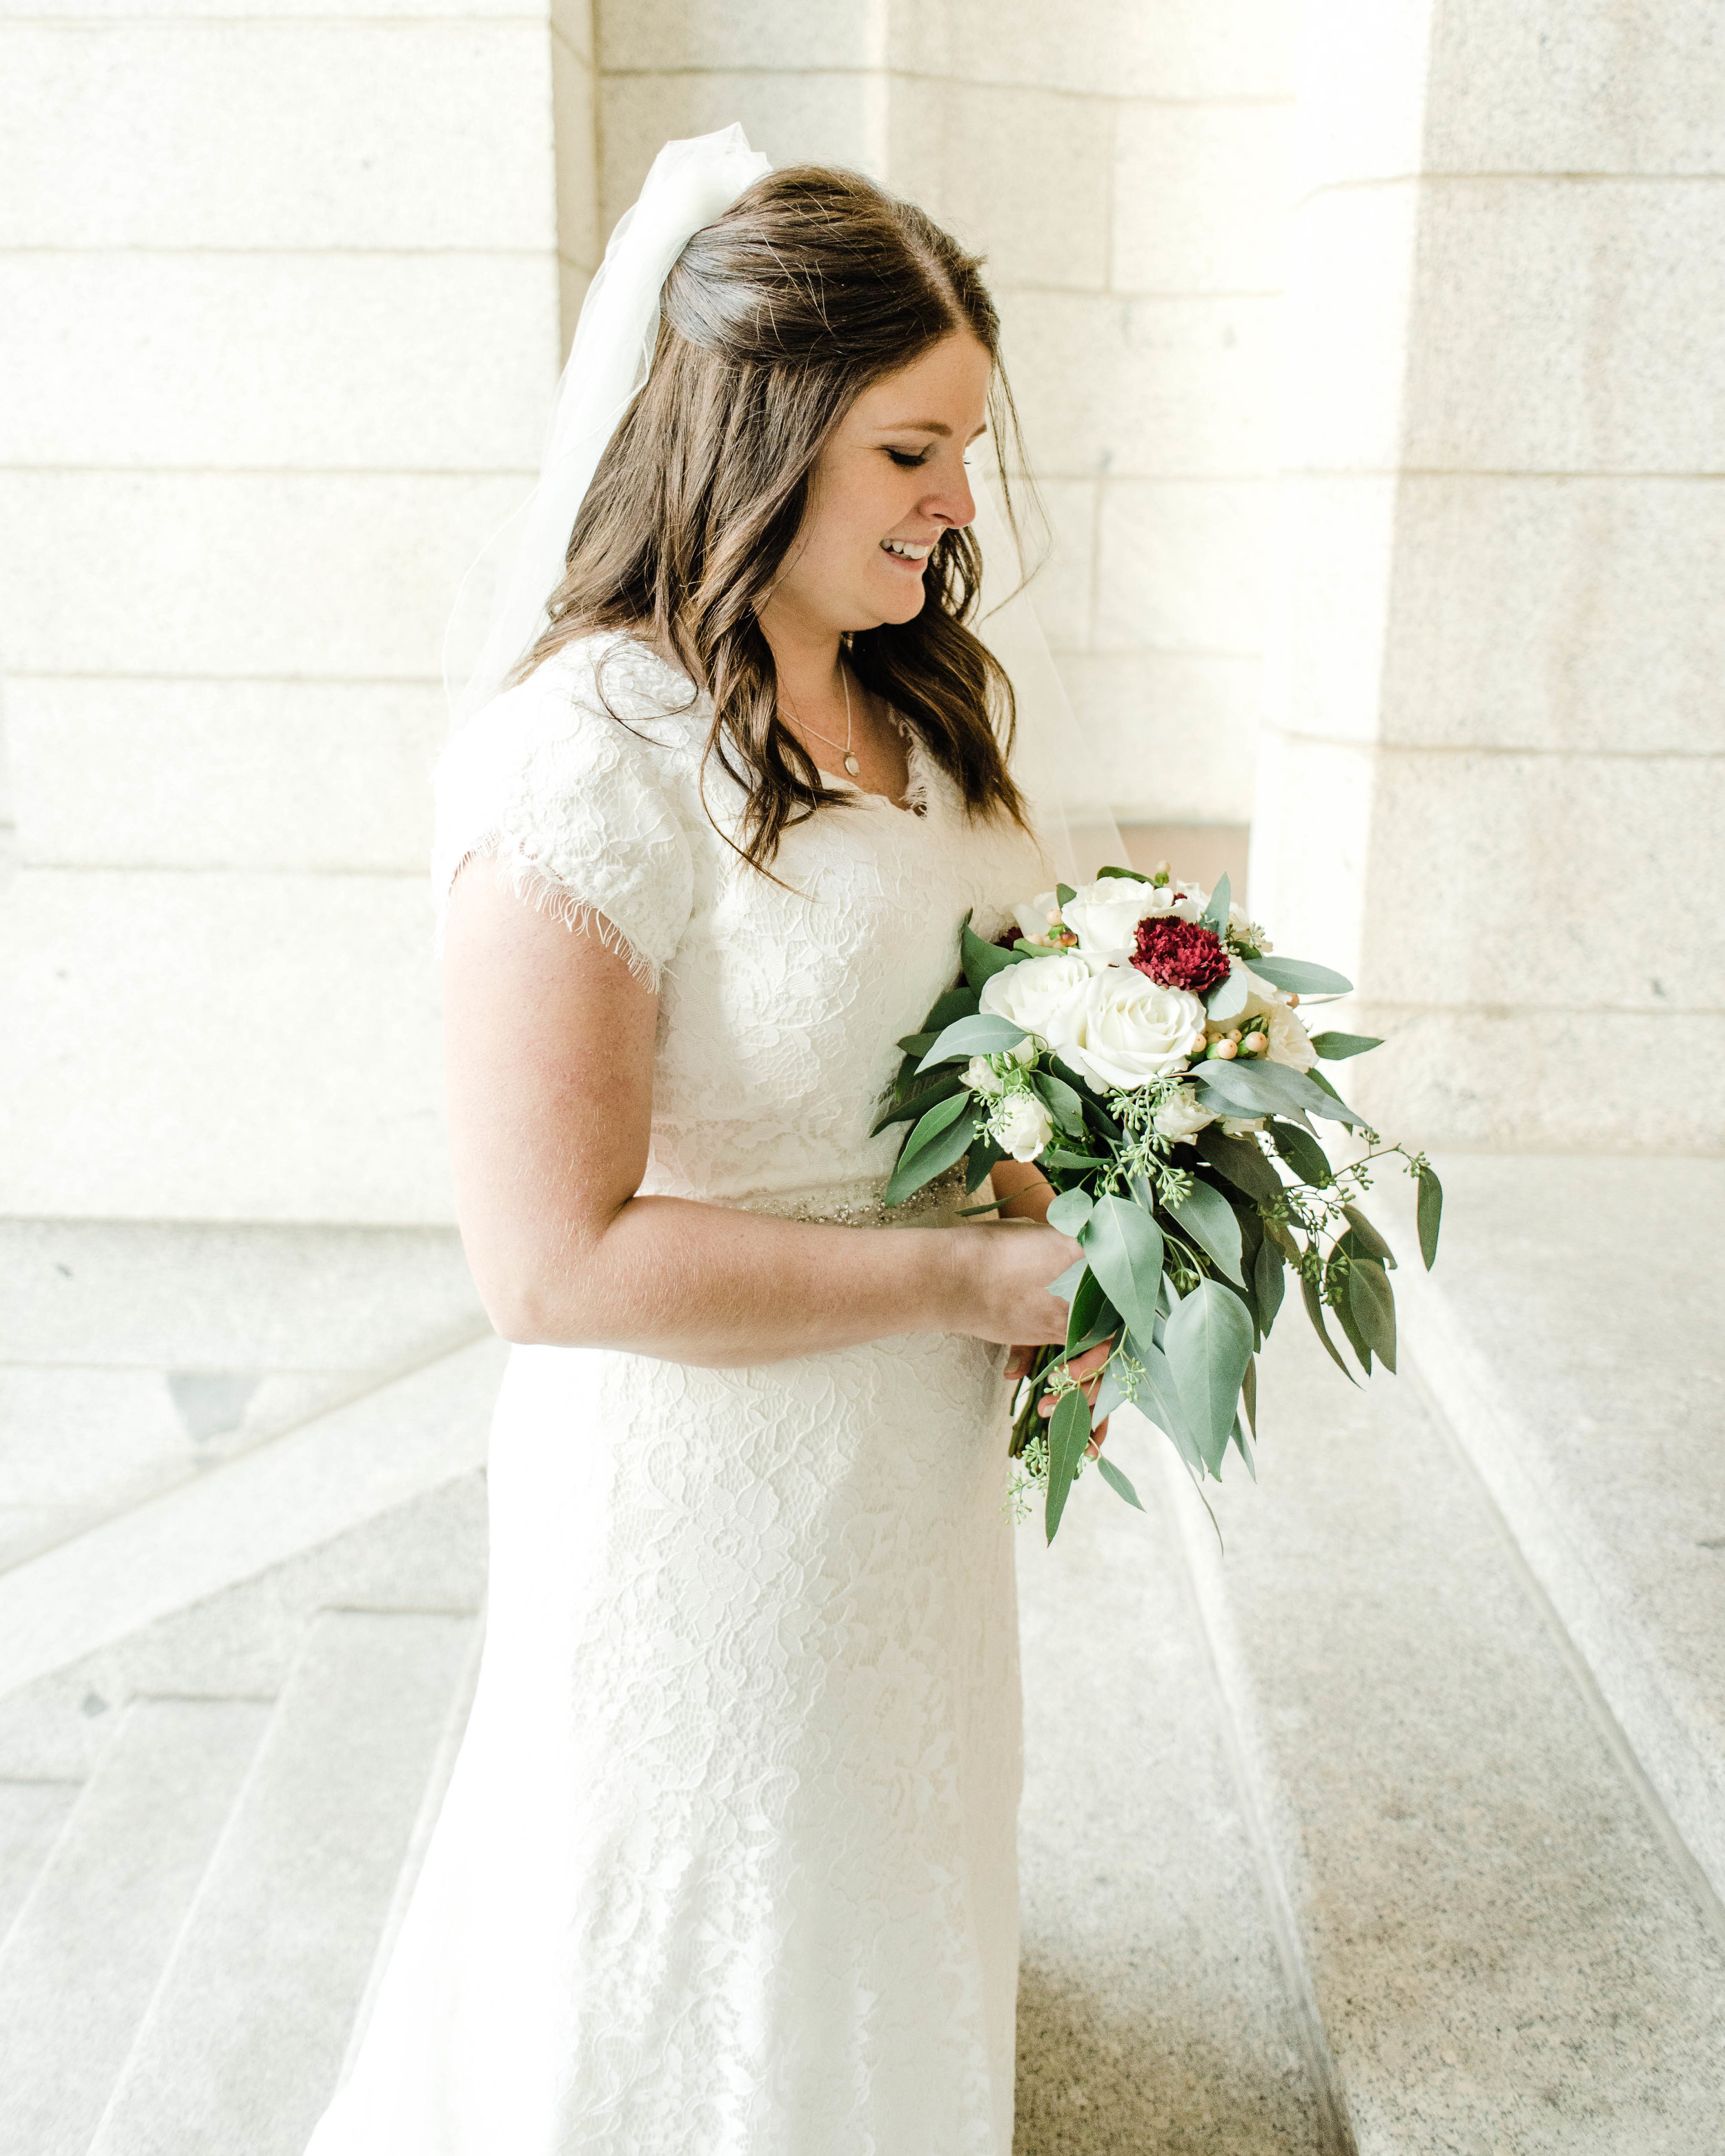 LINDSAY+BRAD-BRIDALS-Sadie_Banks_Photography-104.jpg